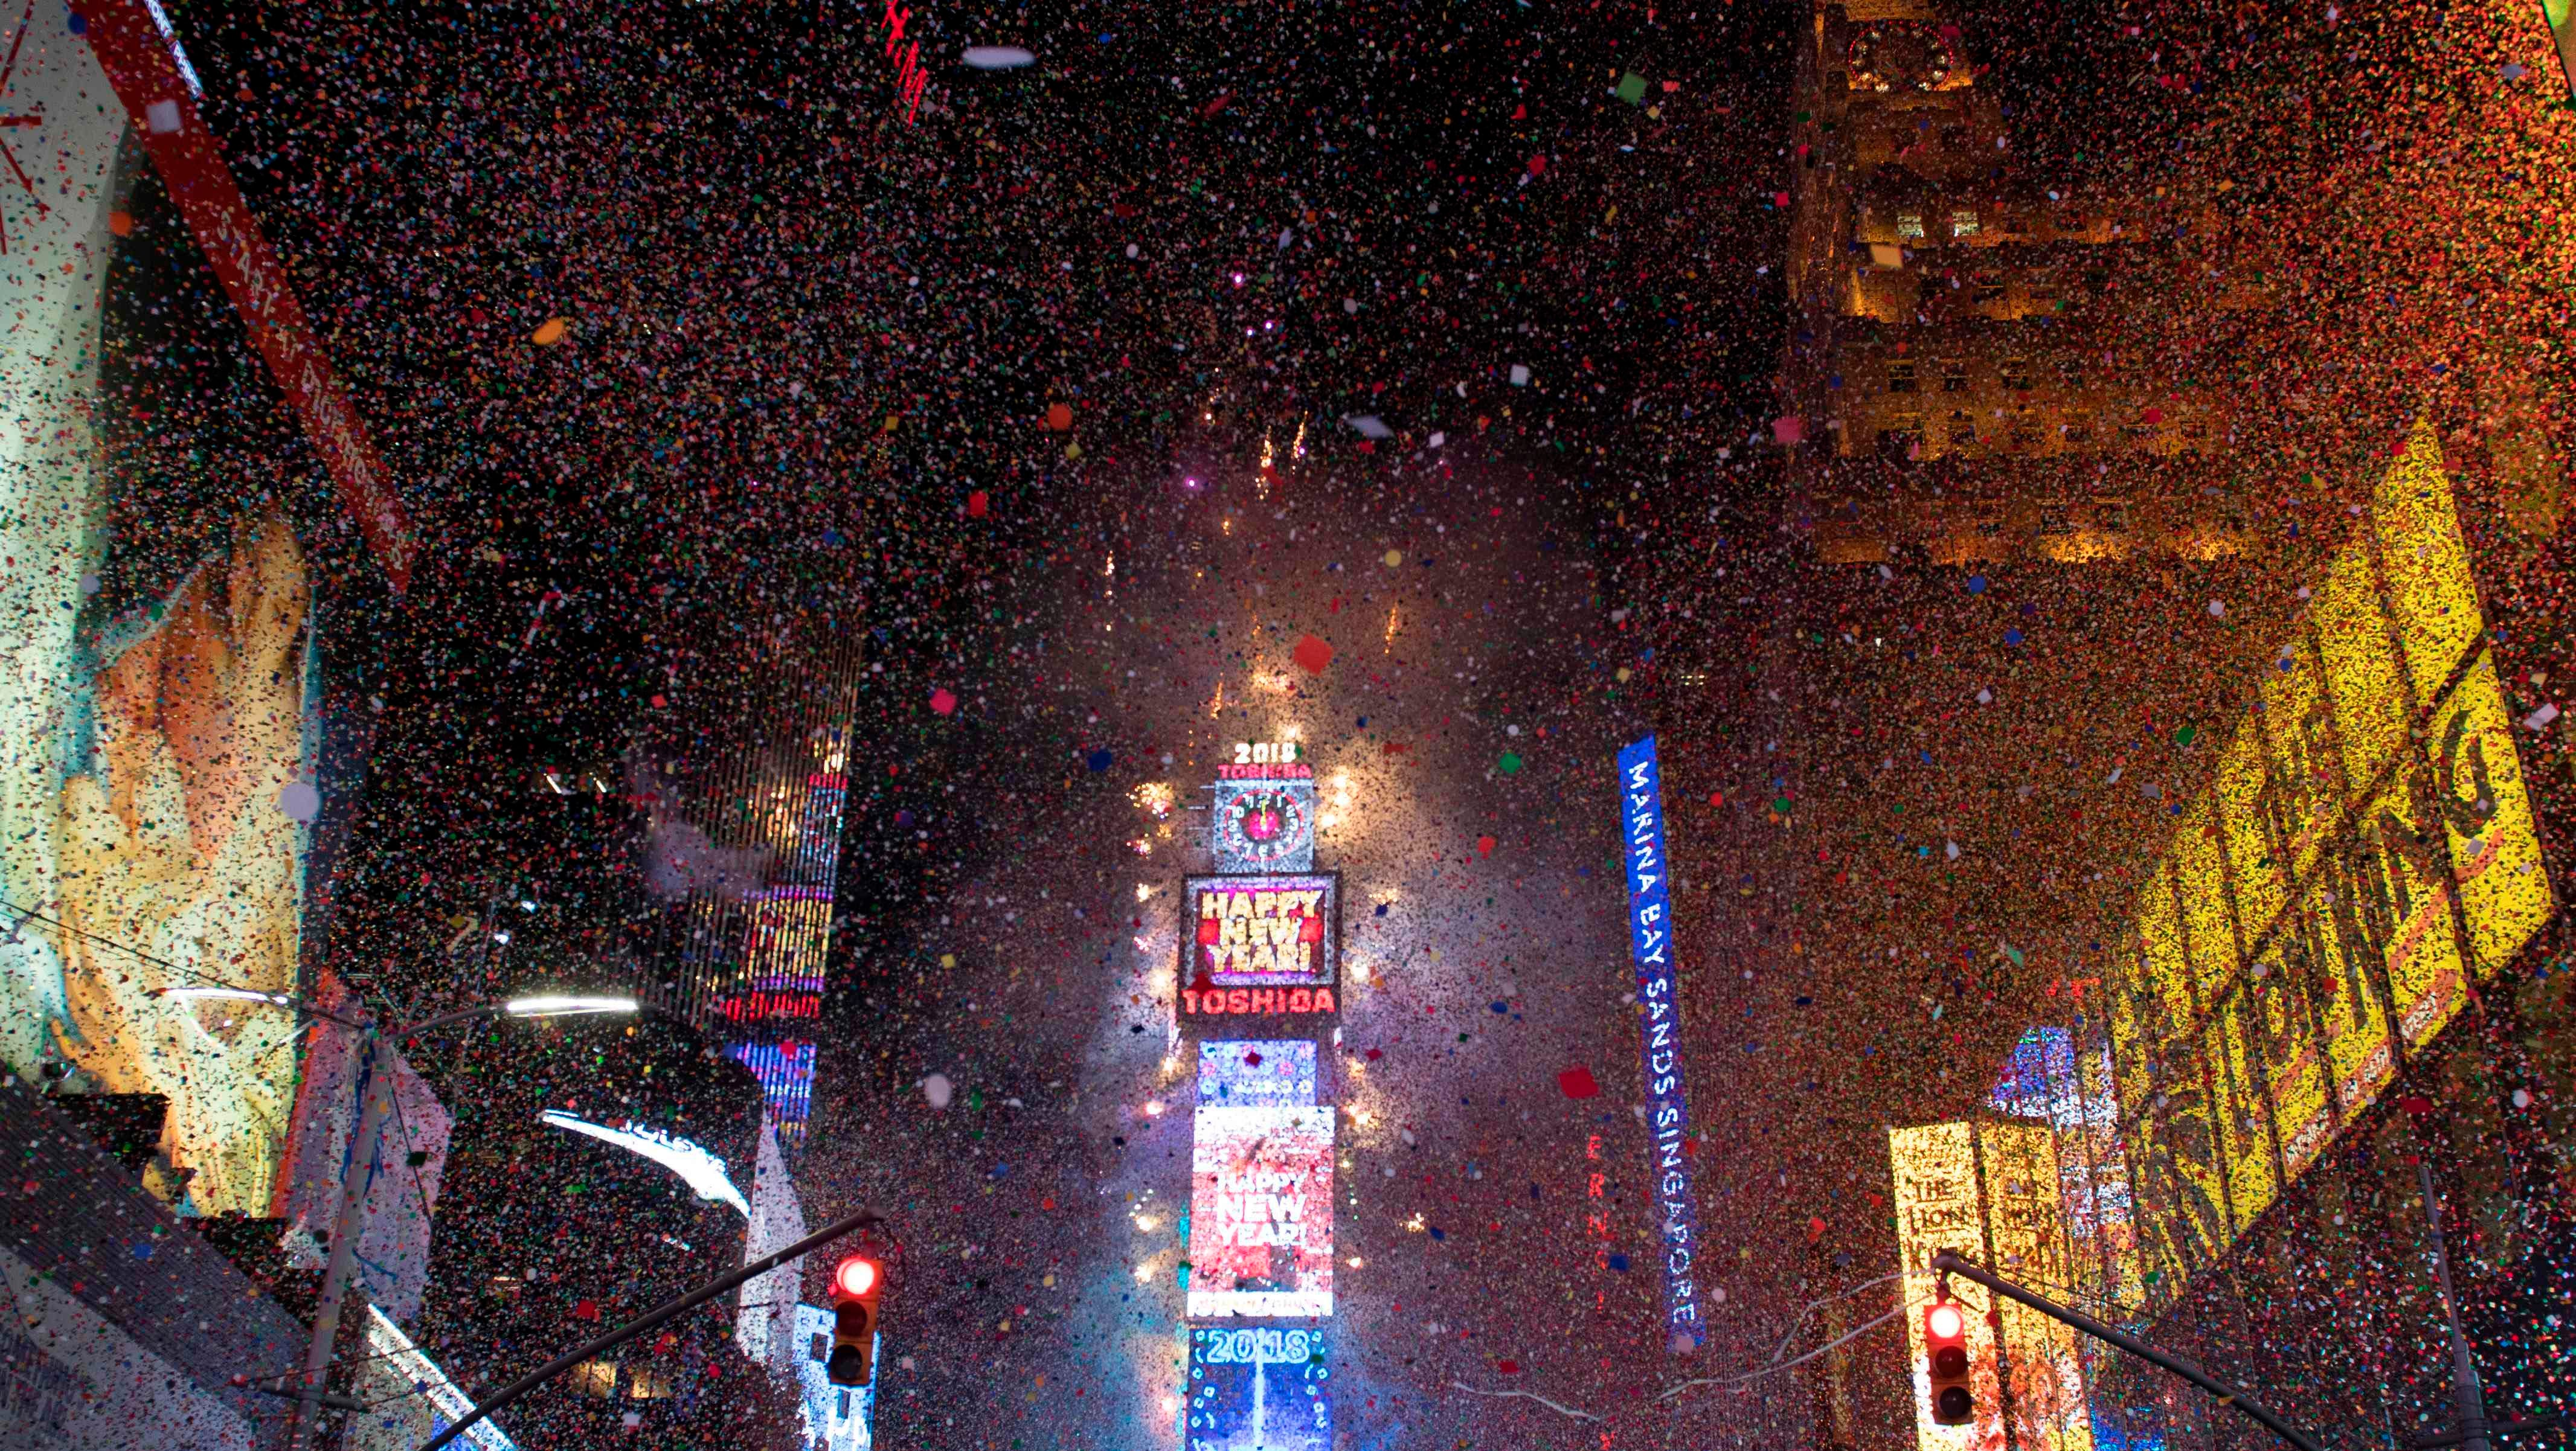 WalletHub says that the Big Apple is the best place to be for New Year's Eve. Their new study ranked 100 cities in the country and New York City came out on top. Although it's No. 1 overall, they were dead last when it comes to cost, making it the most expensive place to celebrate the new year.